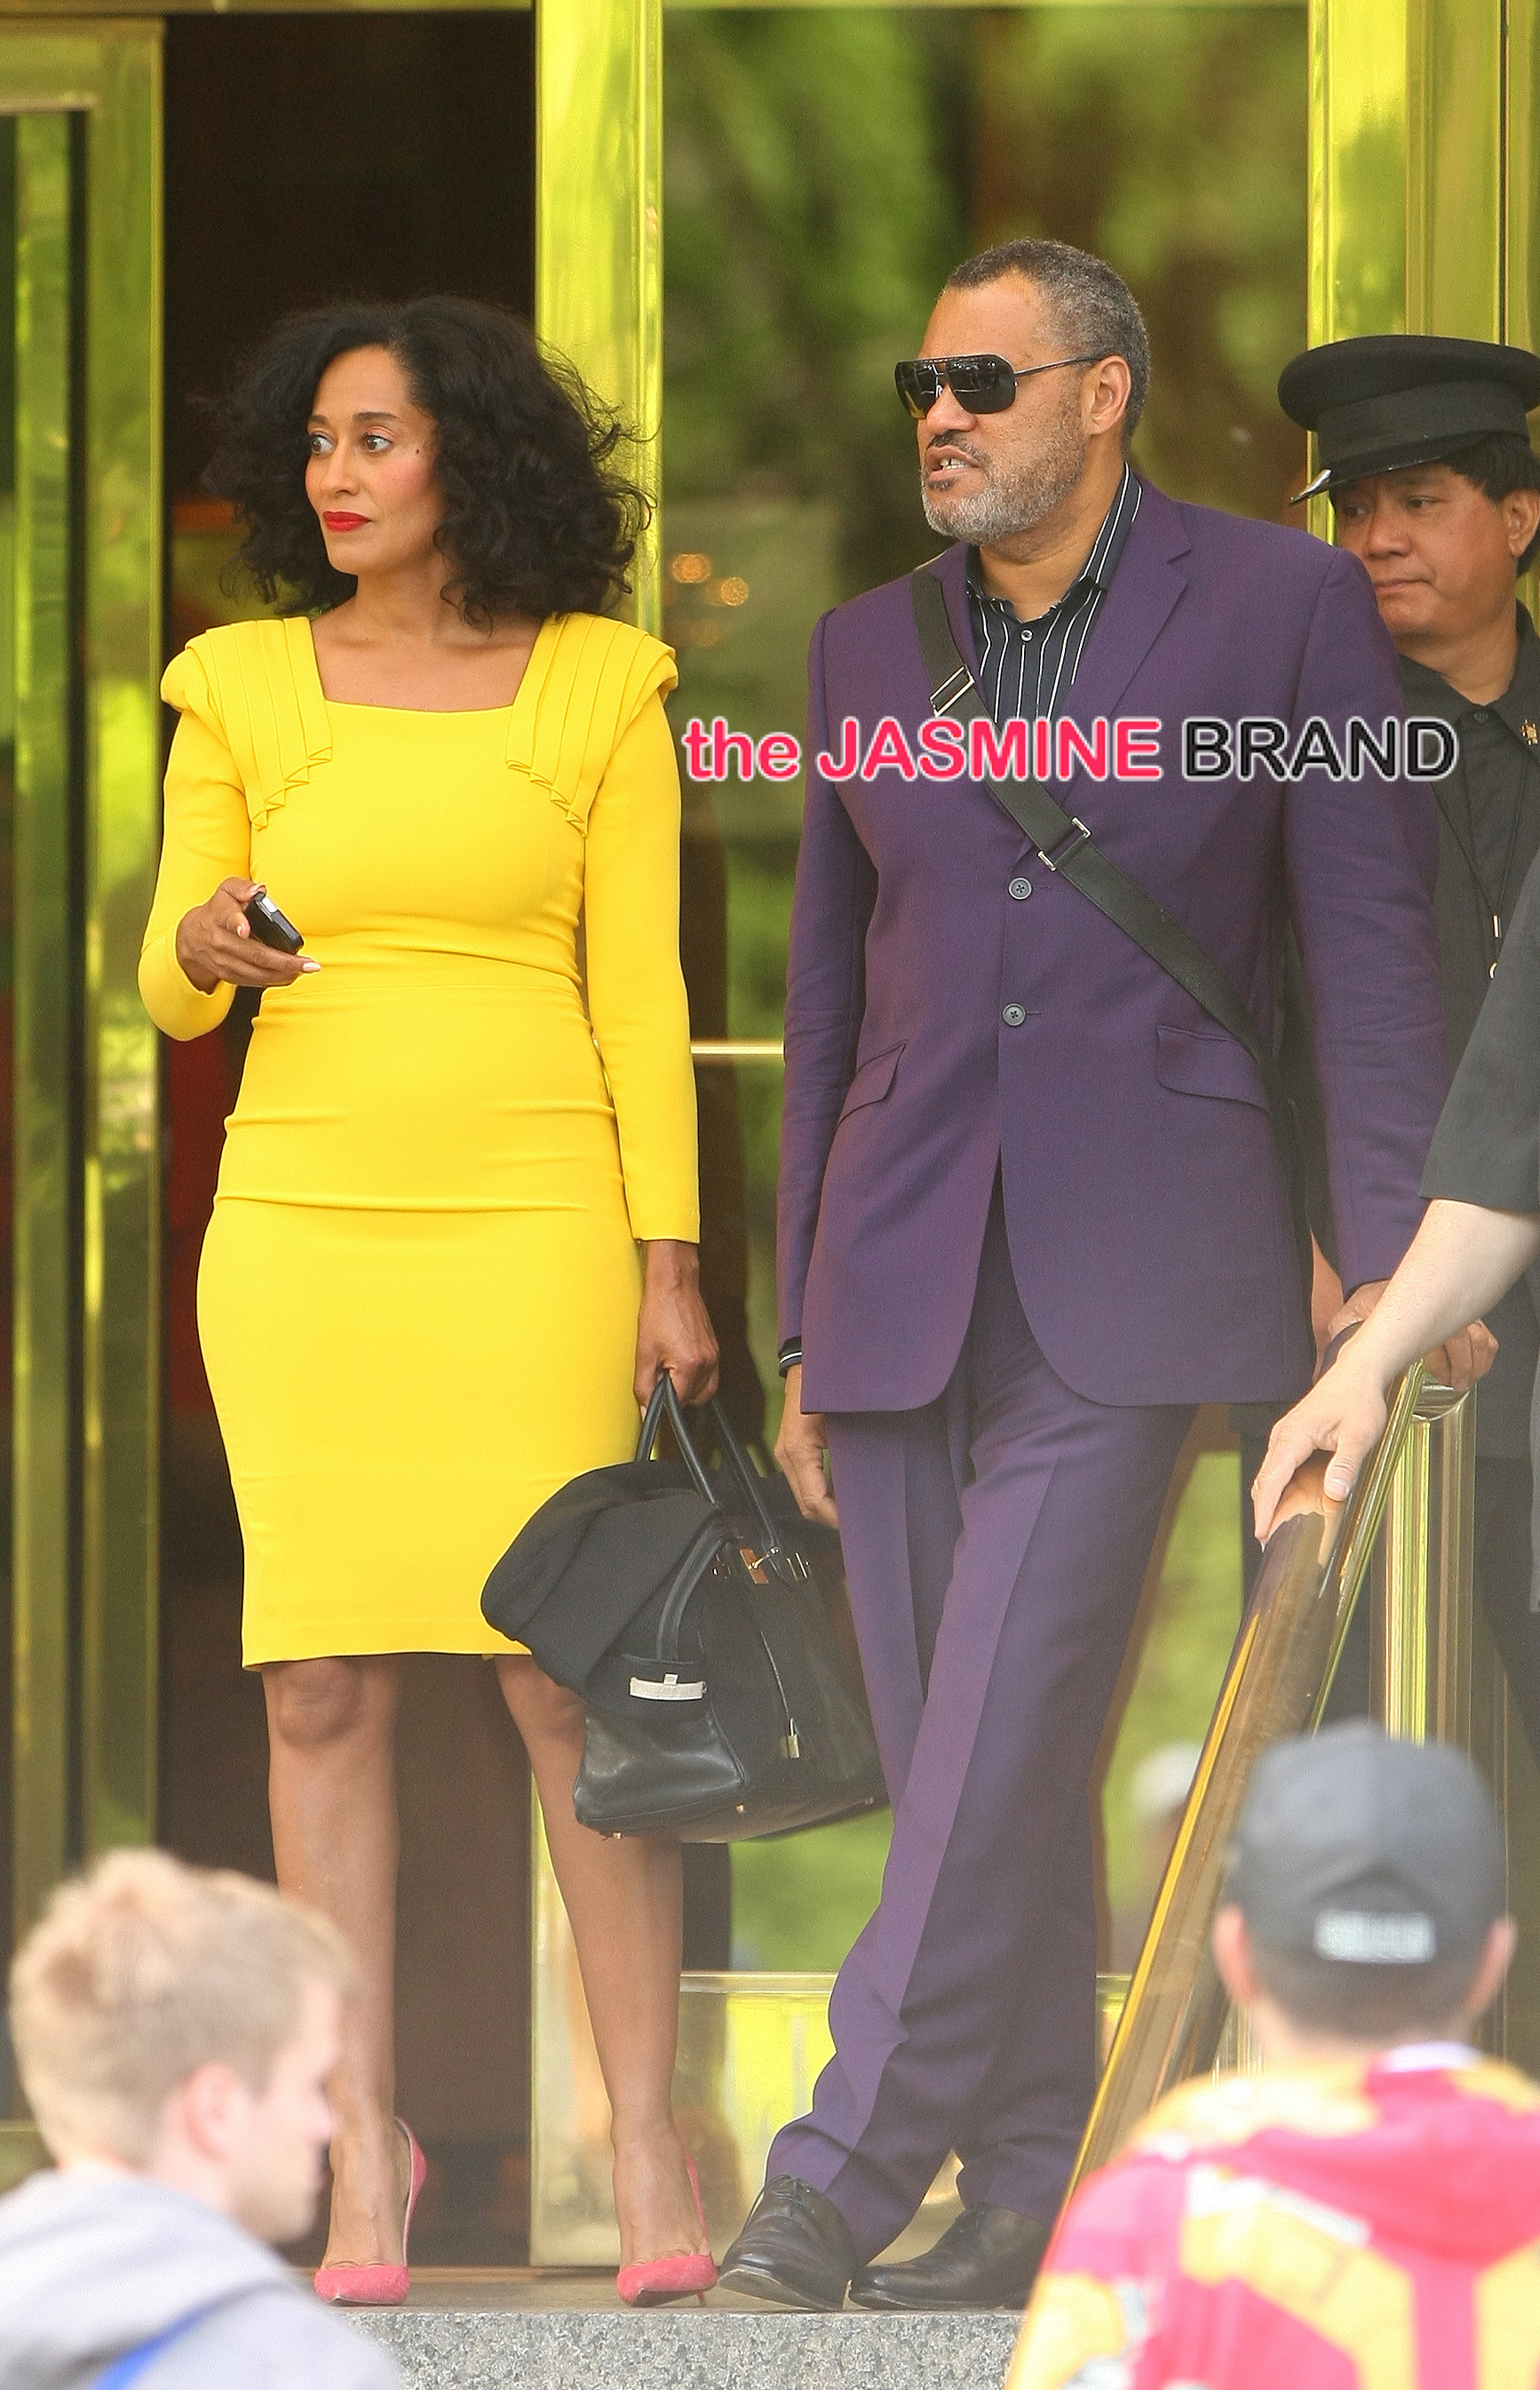 Tracee Ellis Ross and Lawrence Fishburne leaving their hotel in NYC